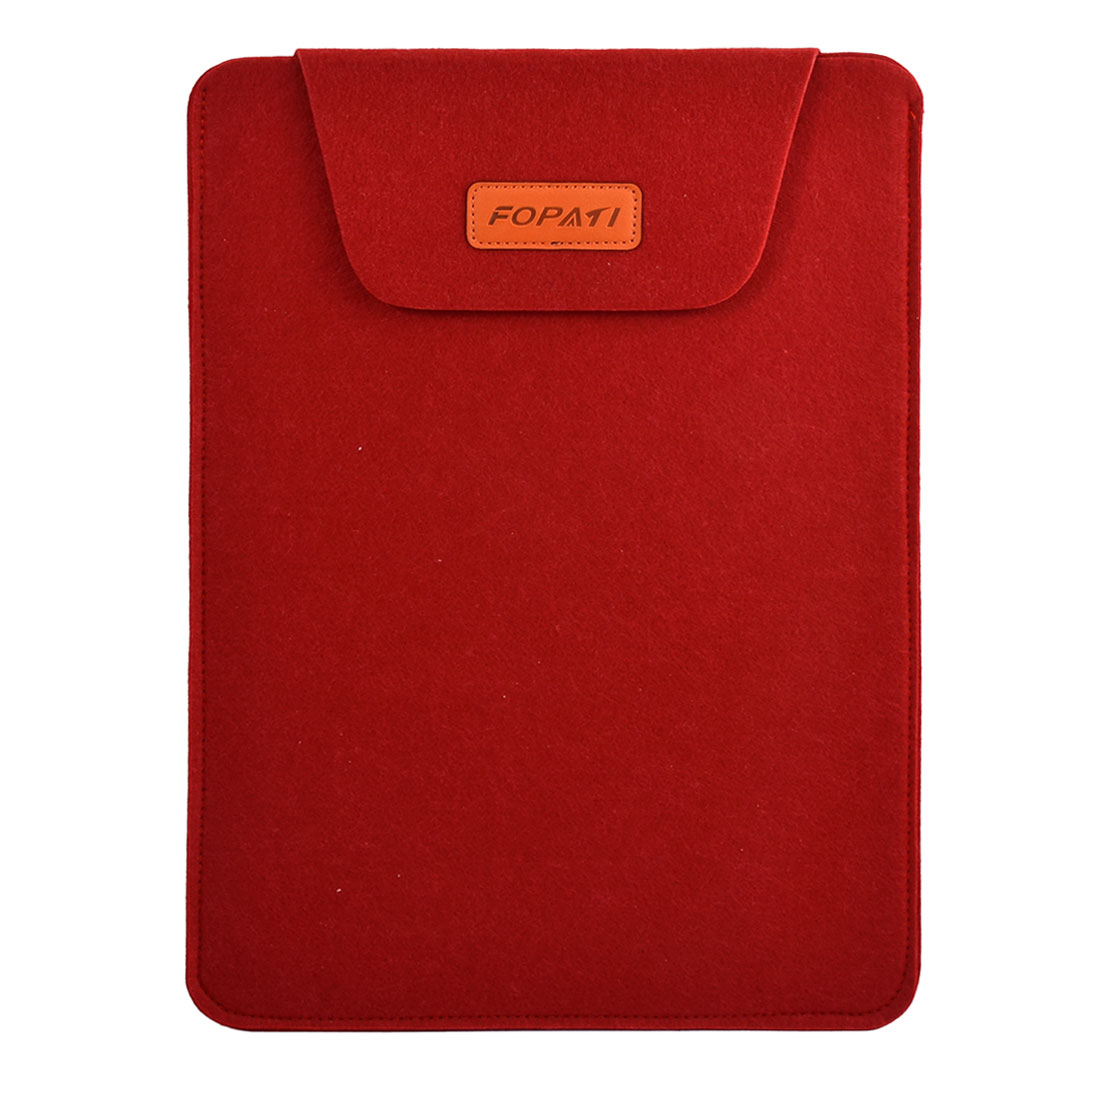 Home PC Wool Felt Universal Protective Skin Notebook Sleeve Case Red for 15.6 Inch Laptop